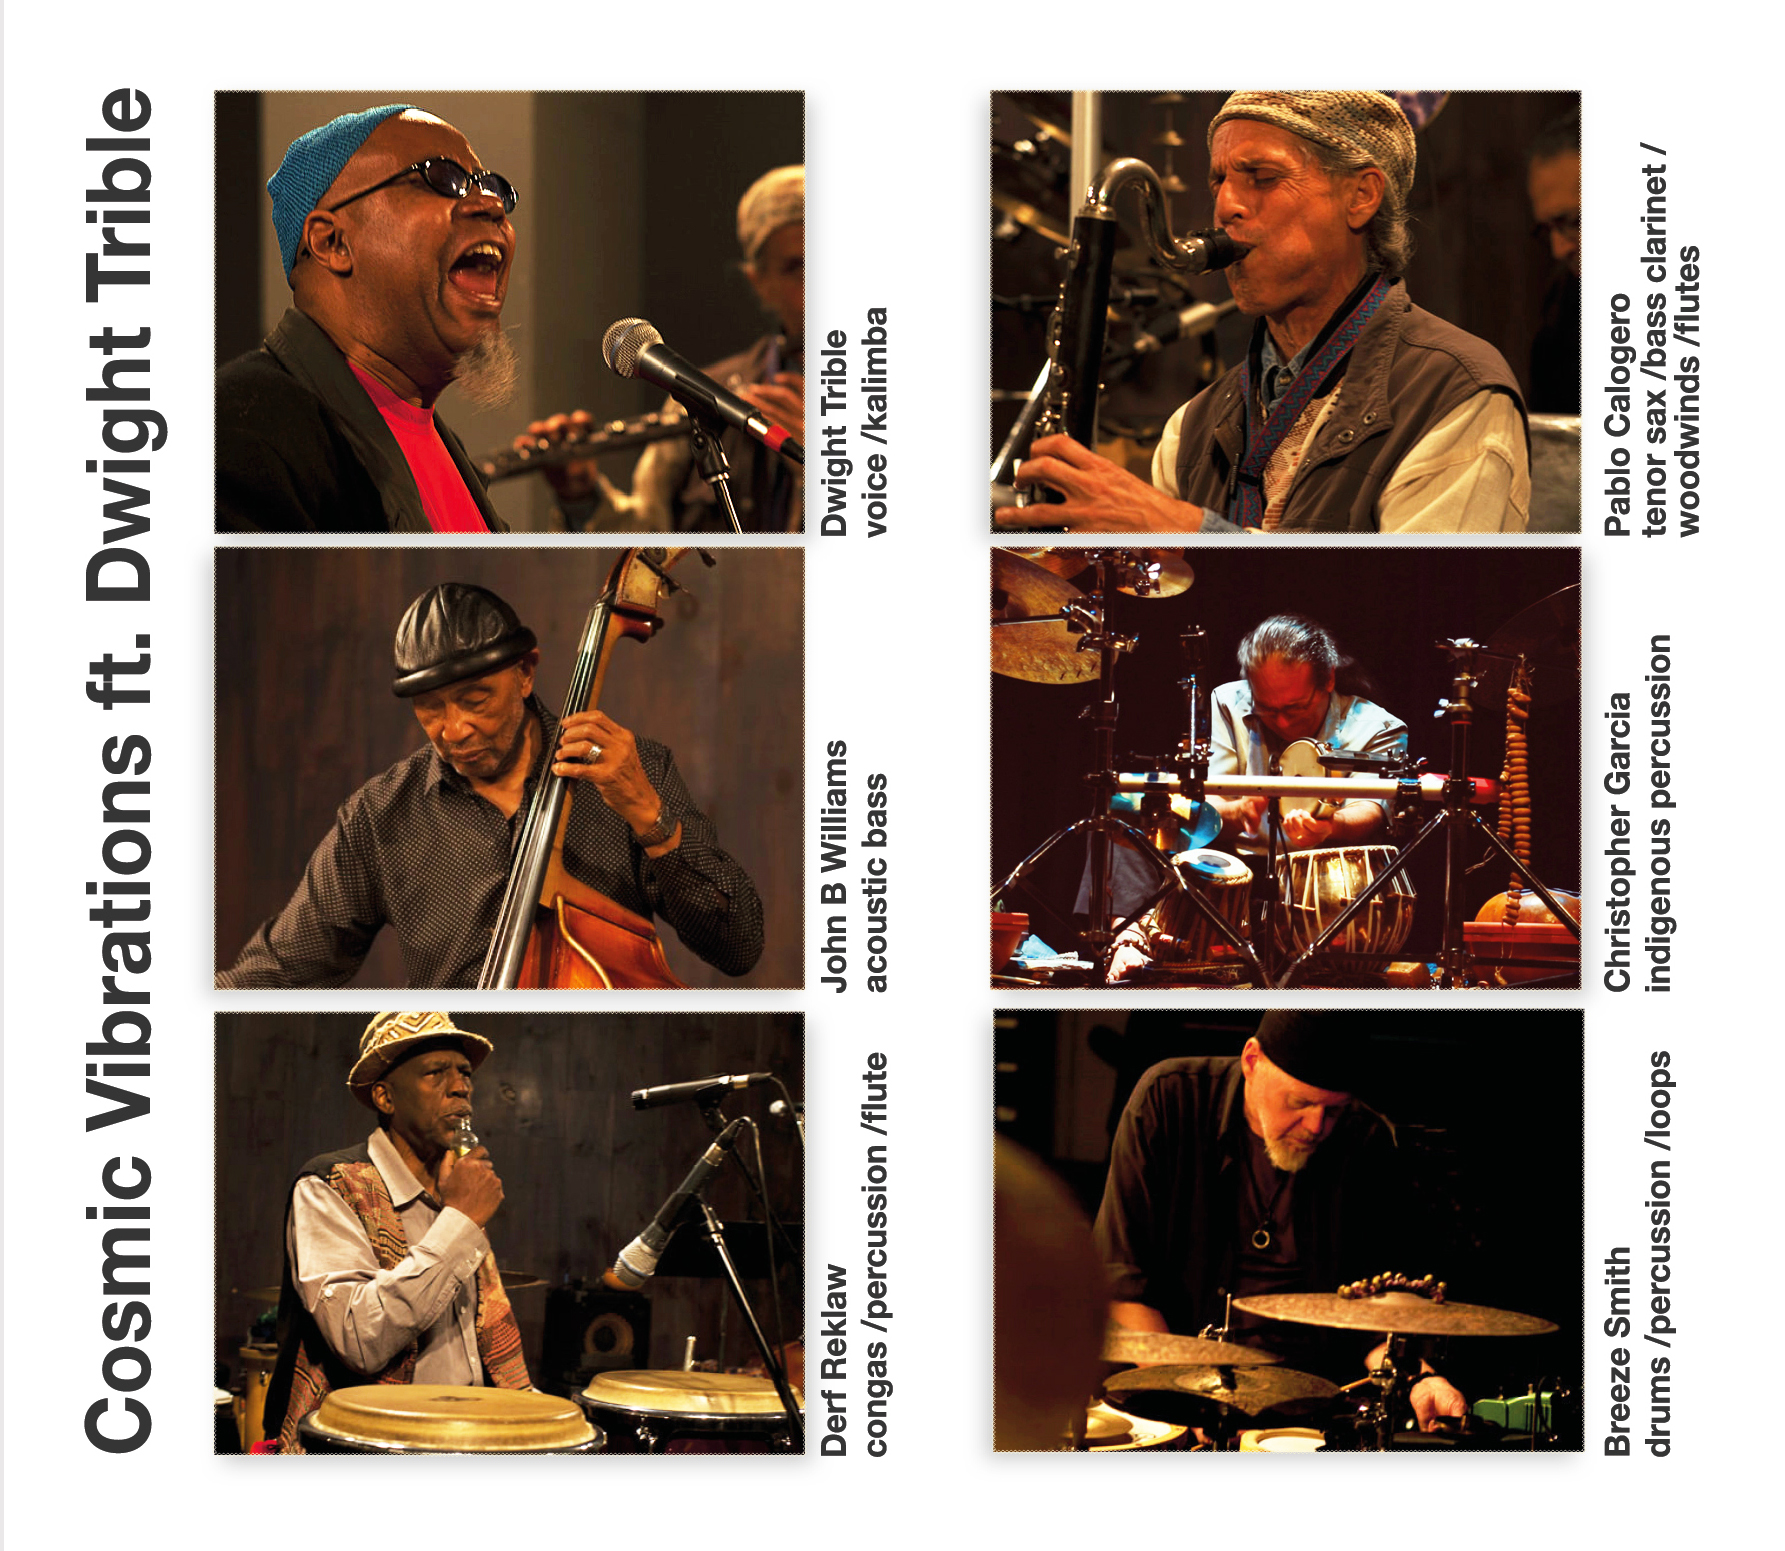 Debut album by new, LA-based spiritual jazz ensemble led by acclaimed jazz vocalist Dwight Trible.